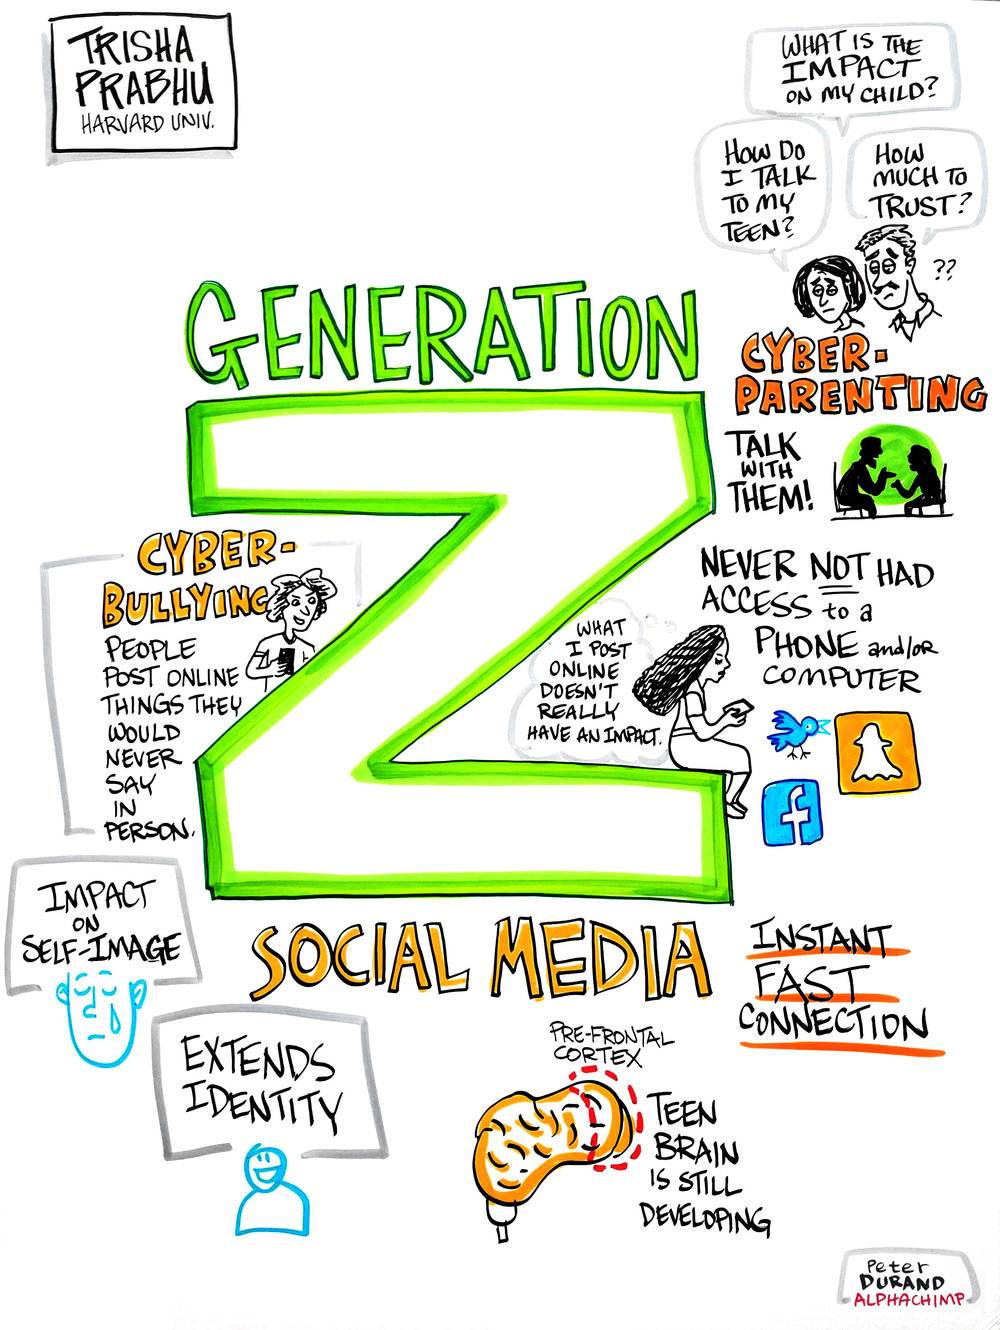 Keynote: Keeping Pace with Gen Z on Digital Media: An Inside Perspective